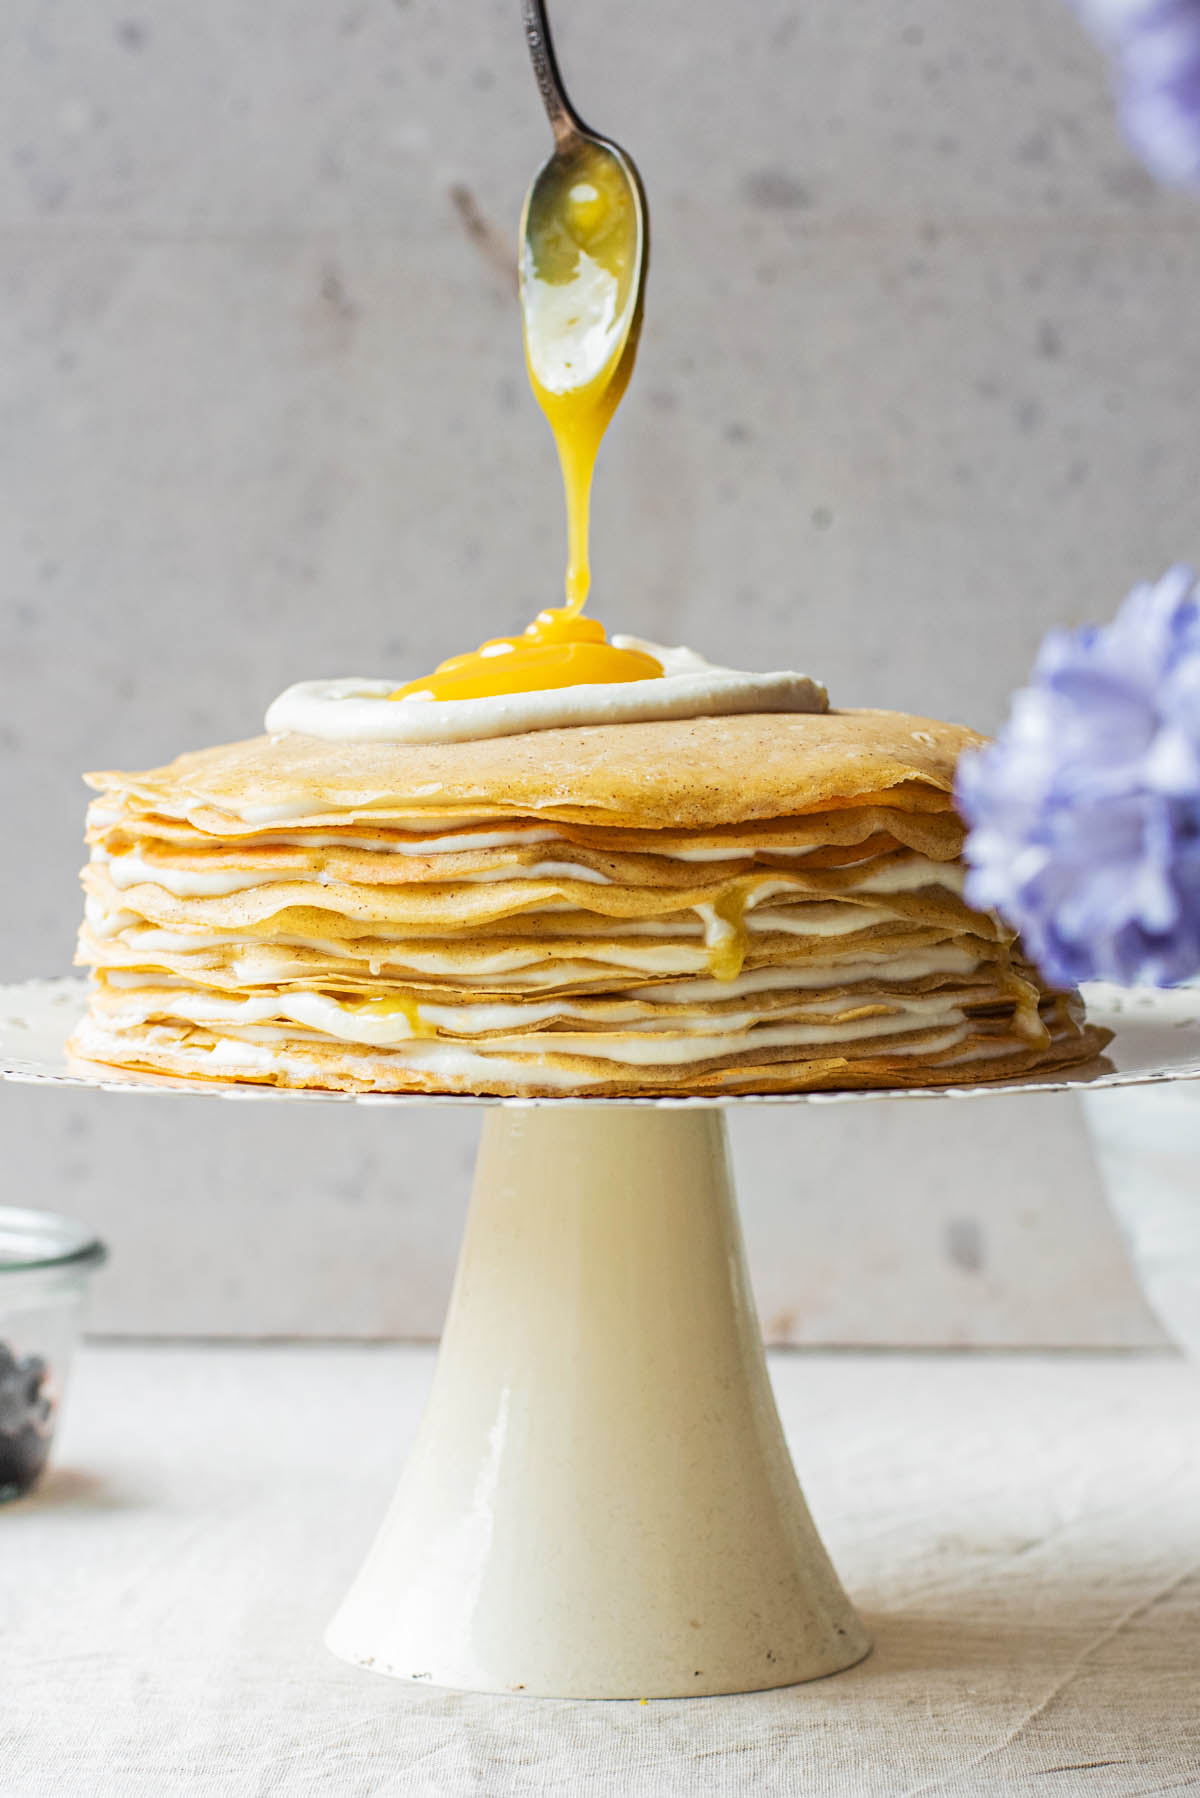 Drizzling lemon curd over the top of the crepe cake.